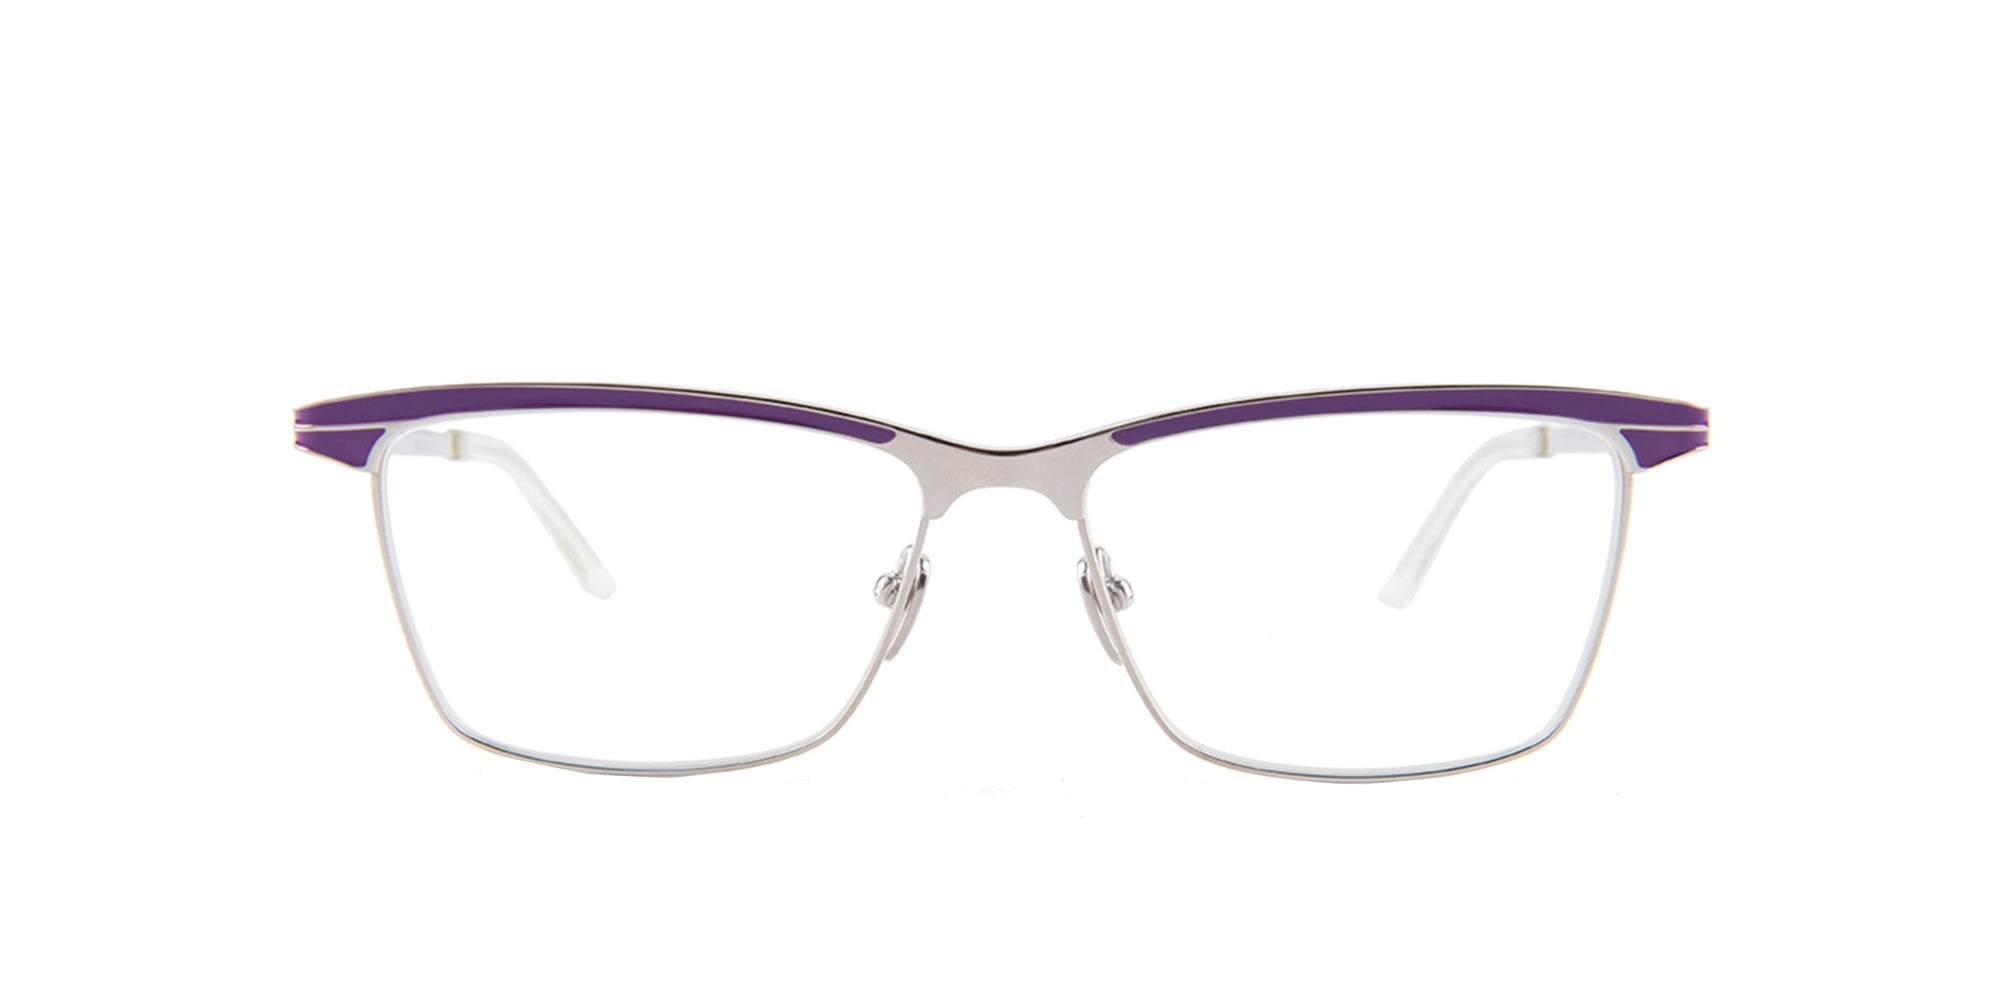 Dita - Corsair Purple Gold Square Women Eyeglasses - 55mm-Eyeglasses-Designer Eyes